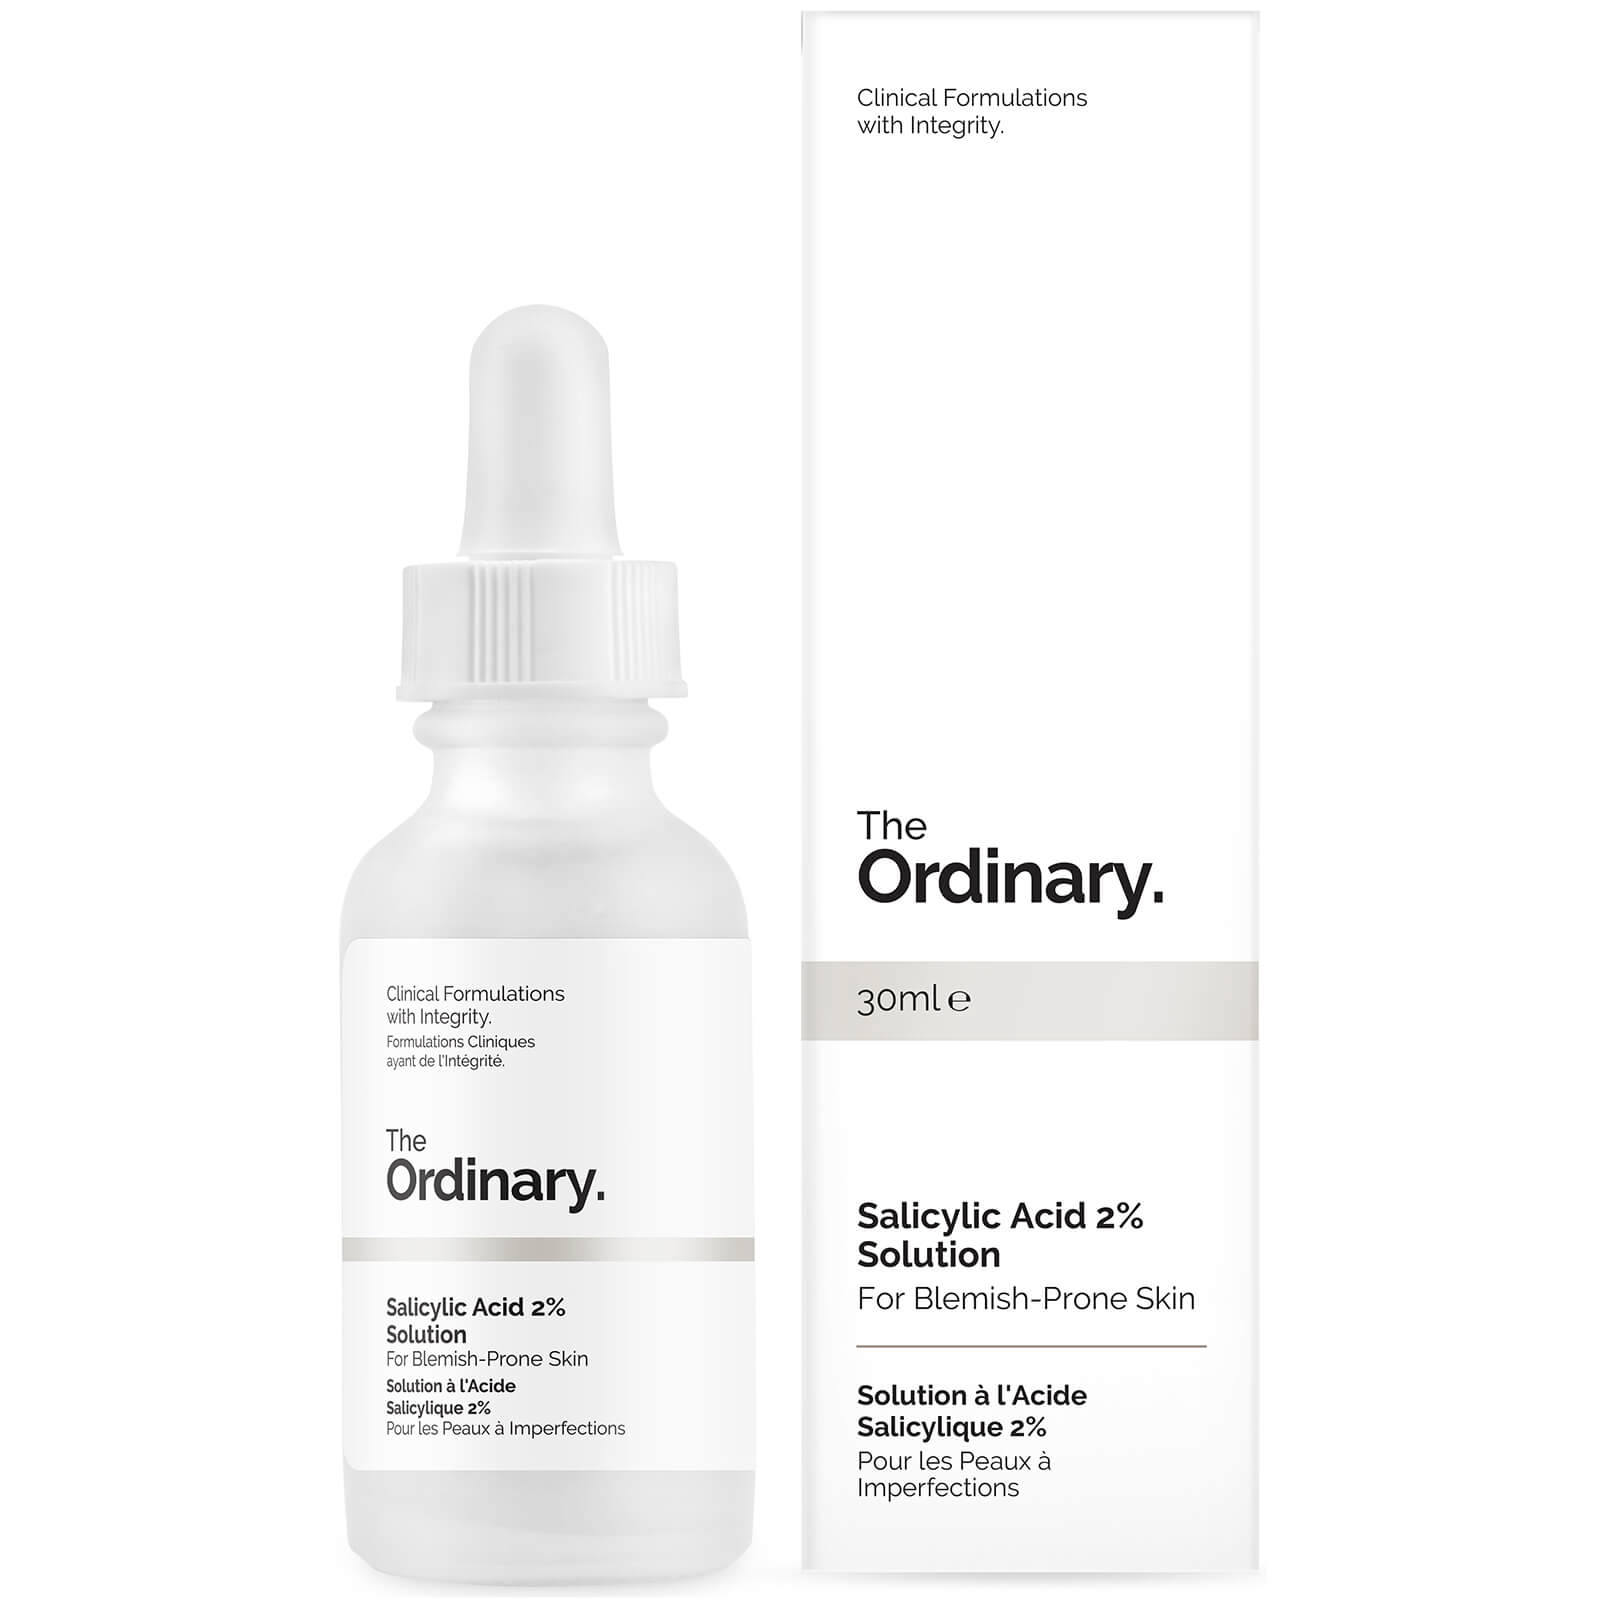 The Ordinary Salicylic Acid serum